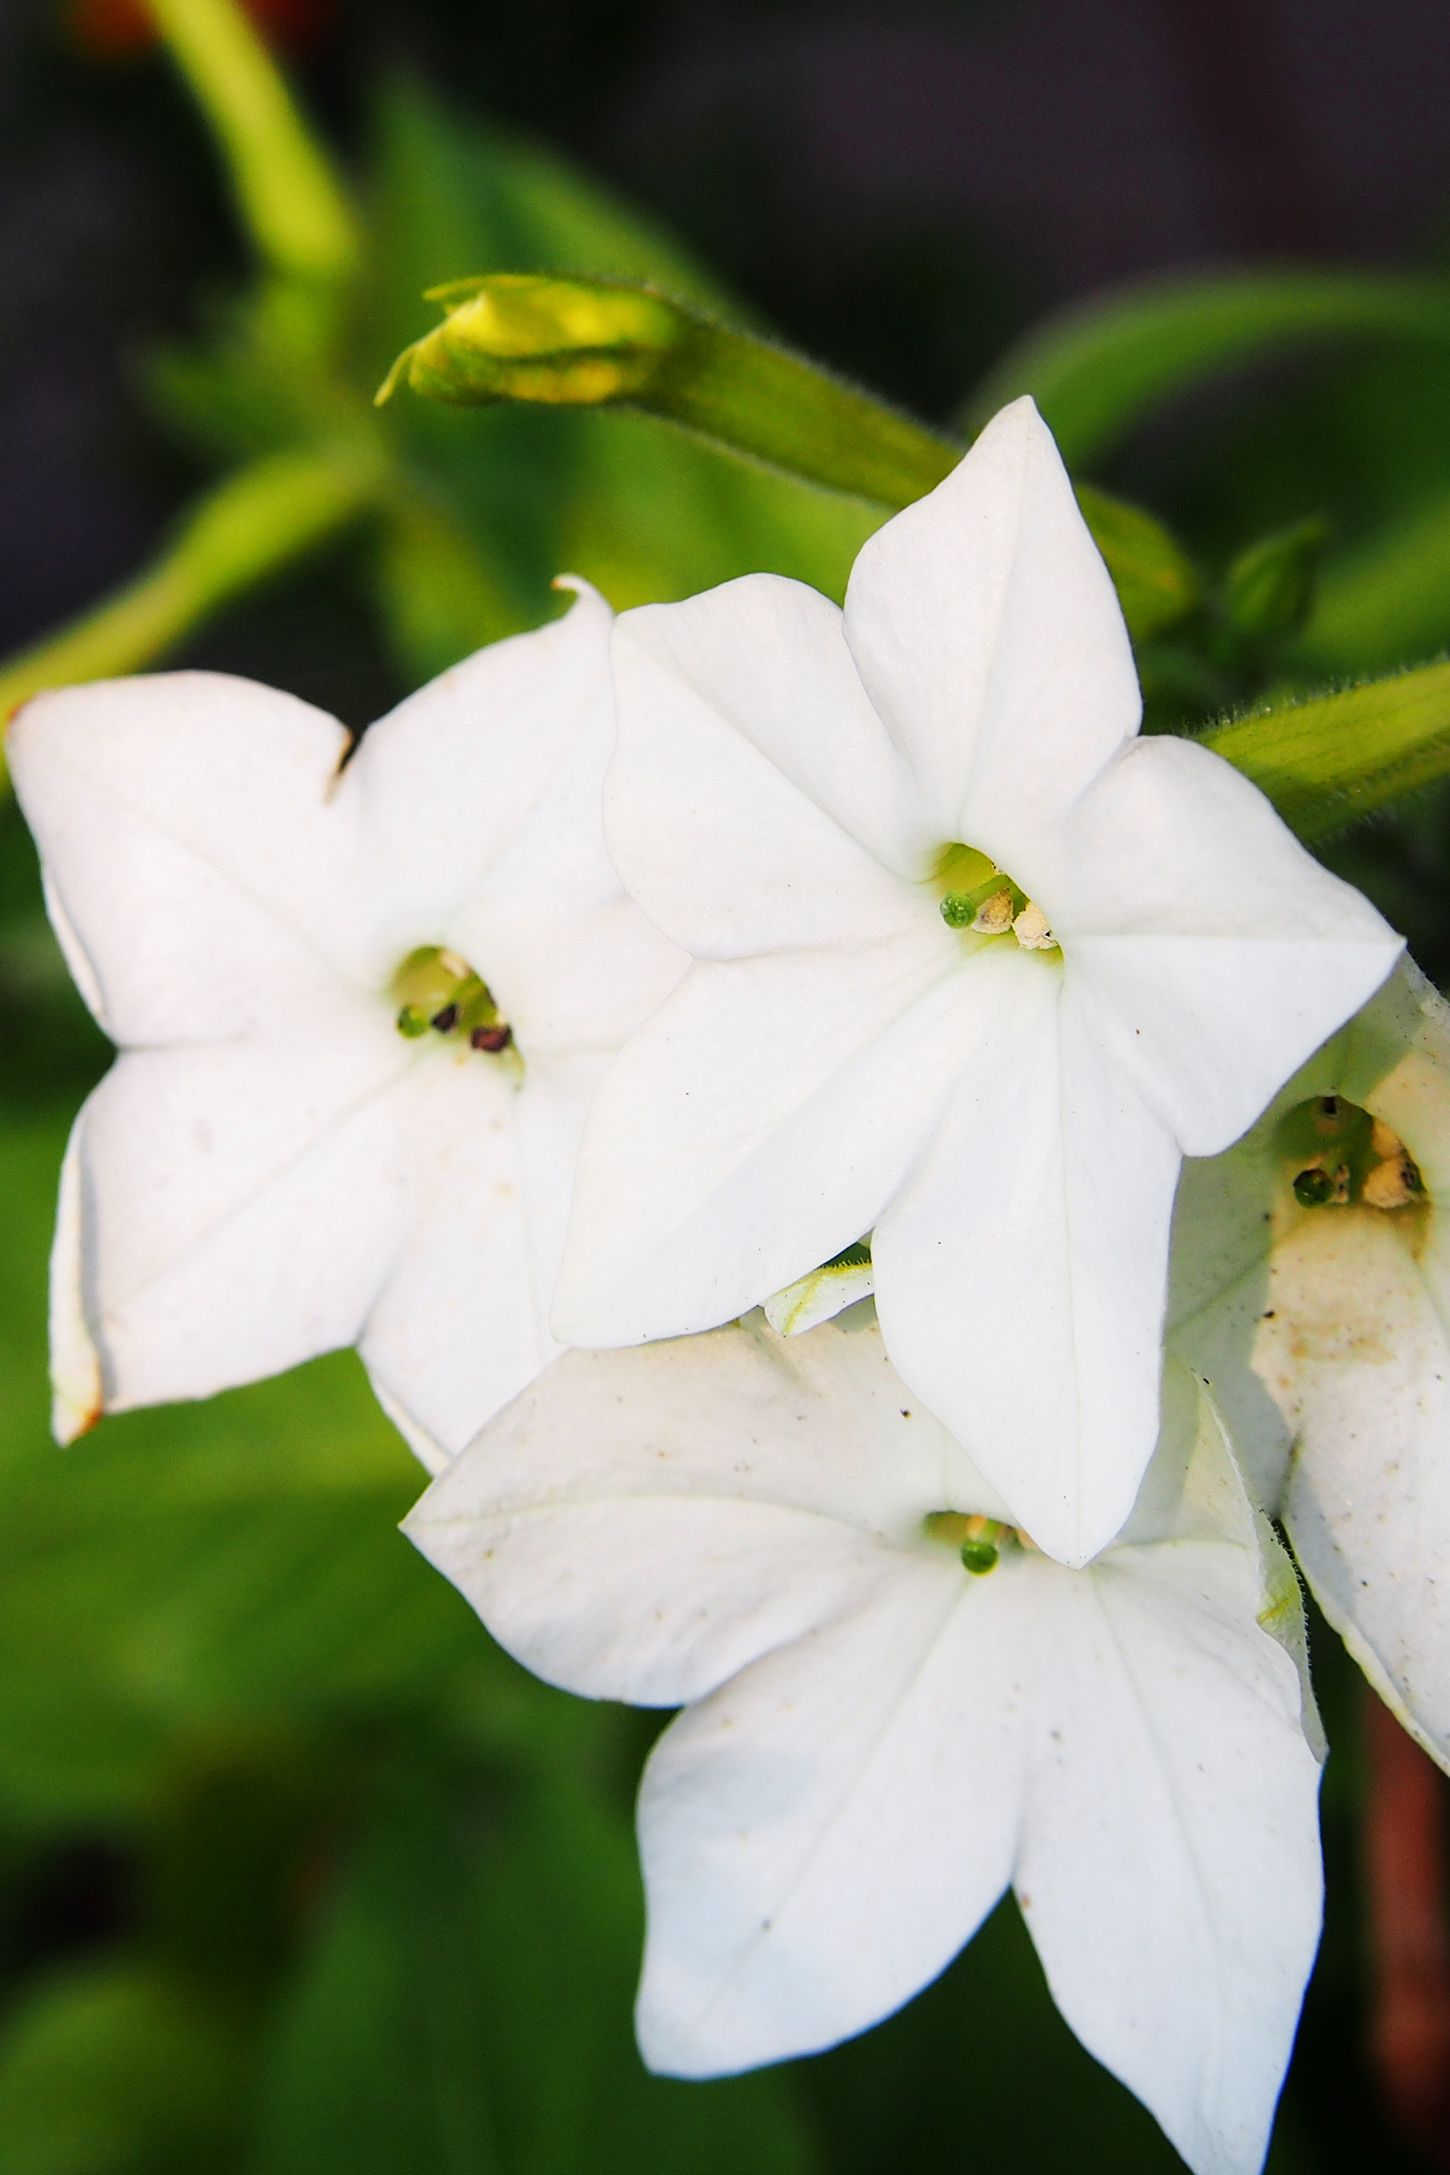 11 Fragrant Night Blooming Flowers - Best Flowers That Only Bloom at Night